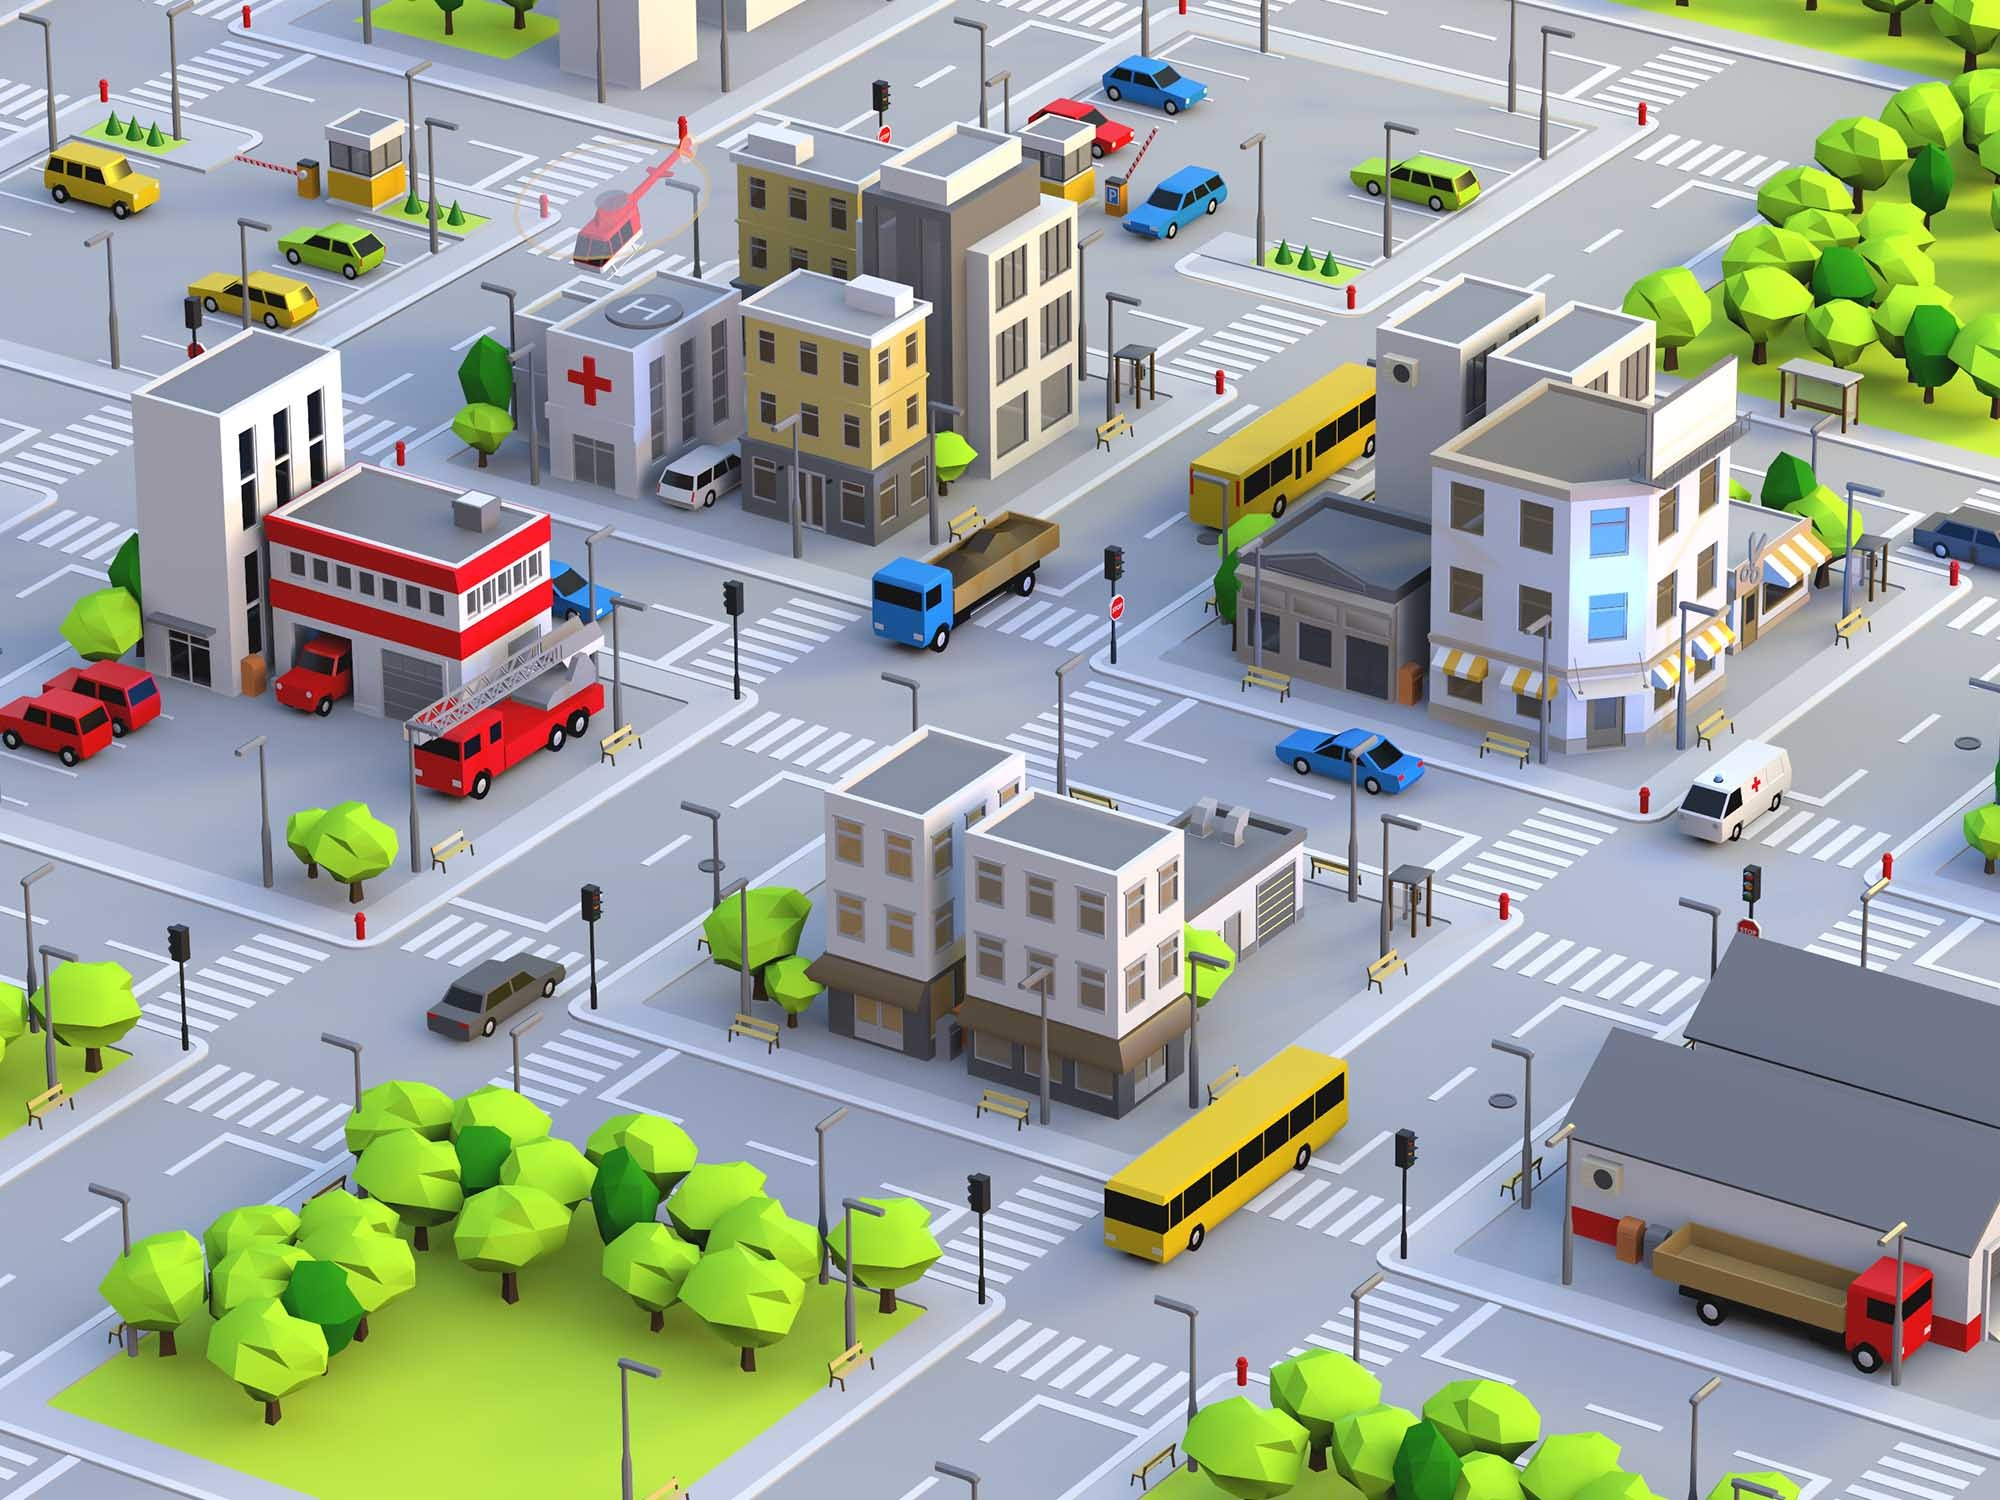 Build a city - drag and drop objects - 3D design by Vectary templates Jul 18, 2018